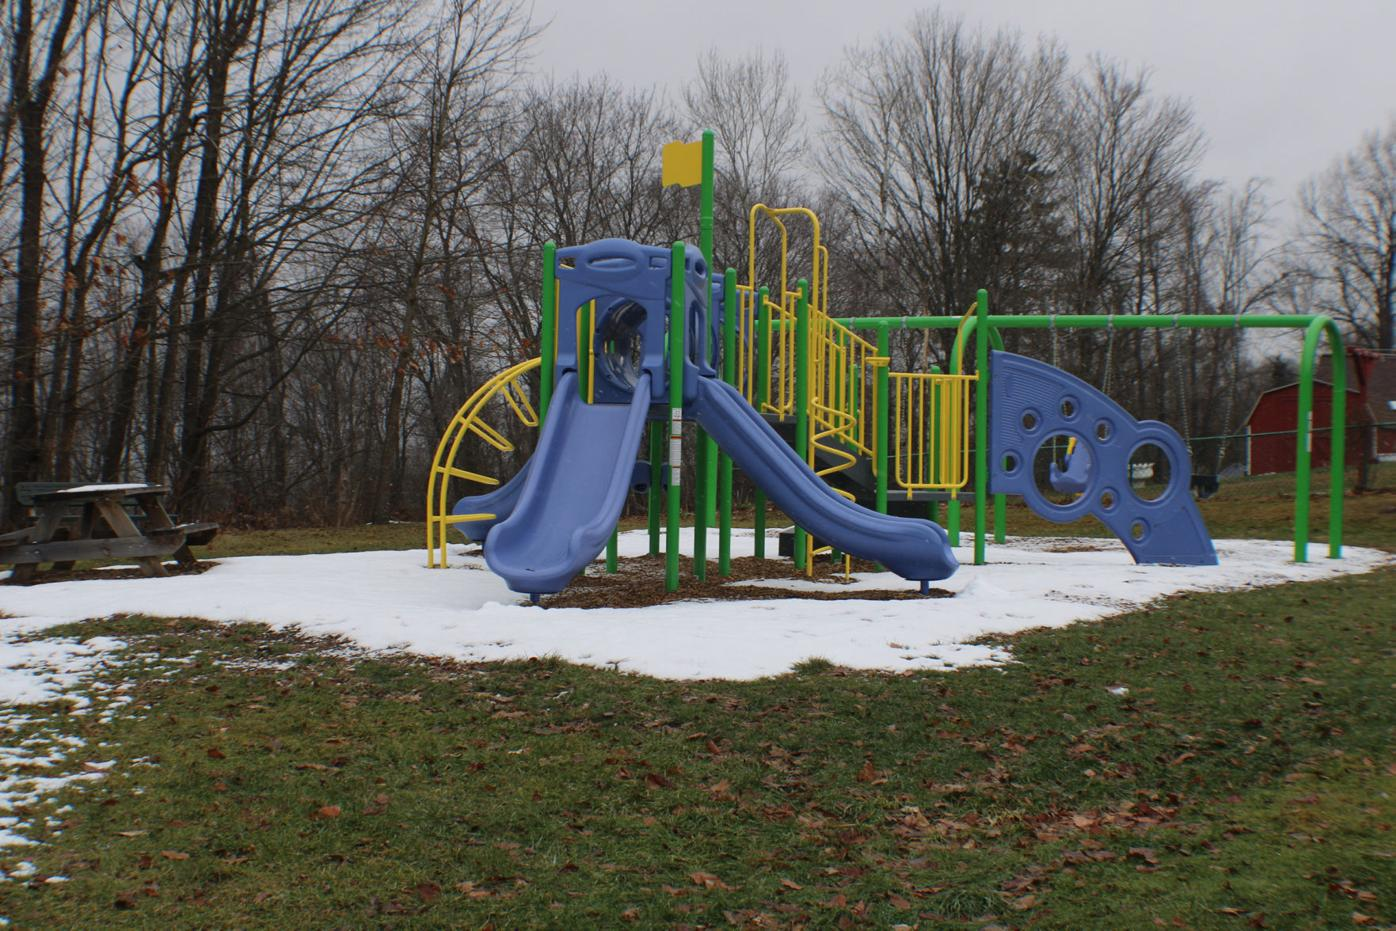 Parks and Re-creation: Archbald's parks undergoing renovations